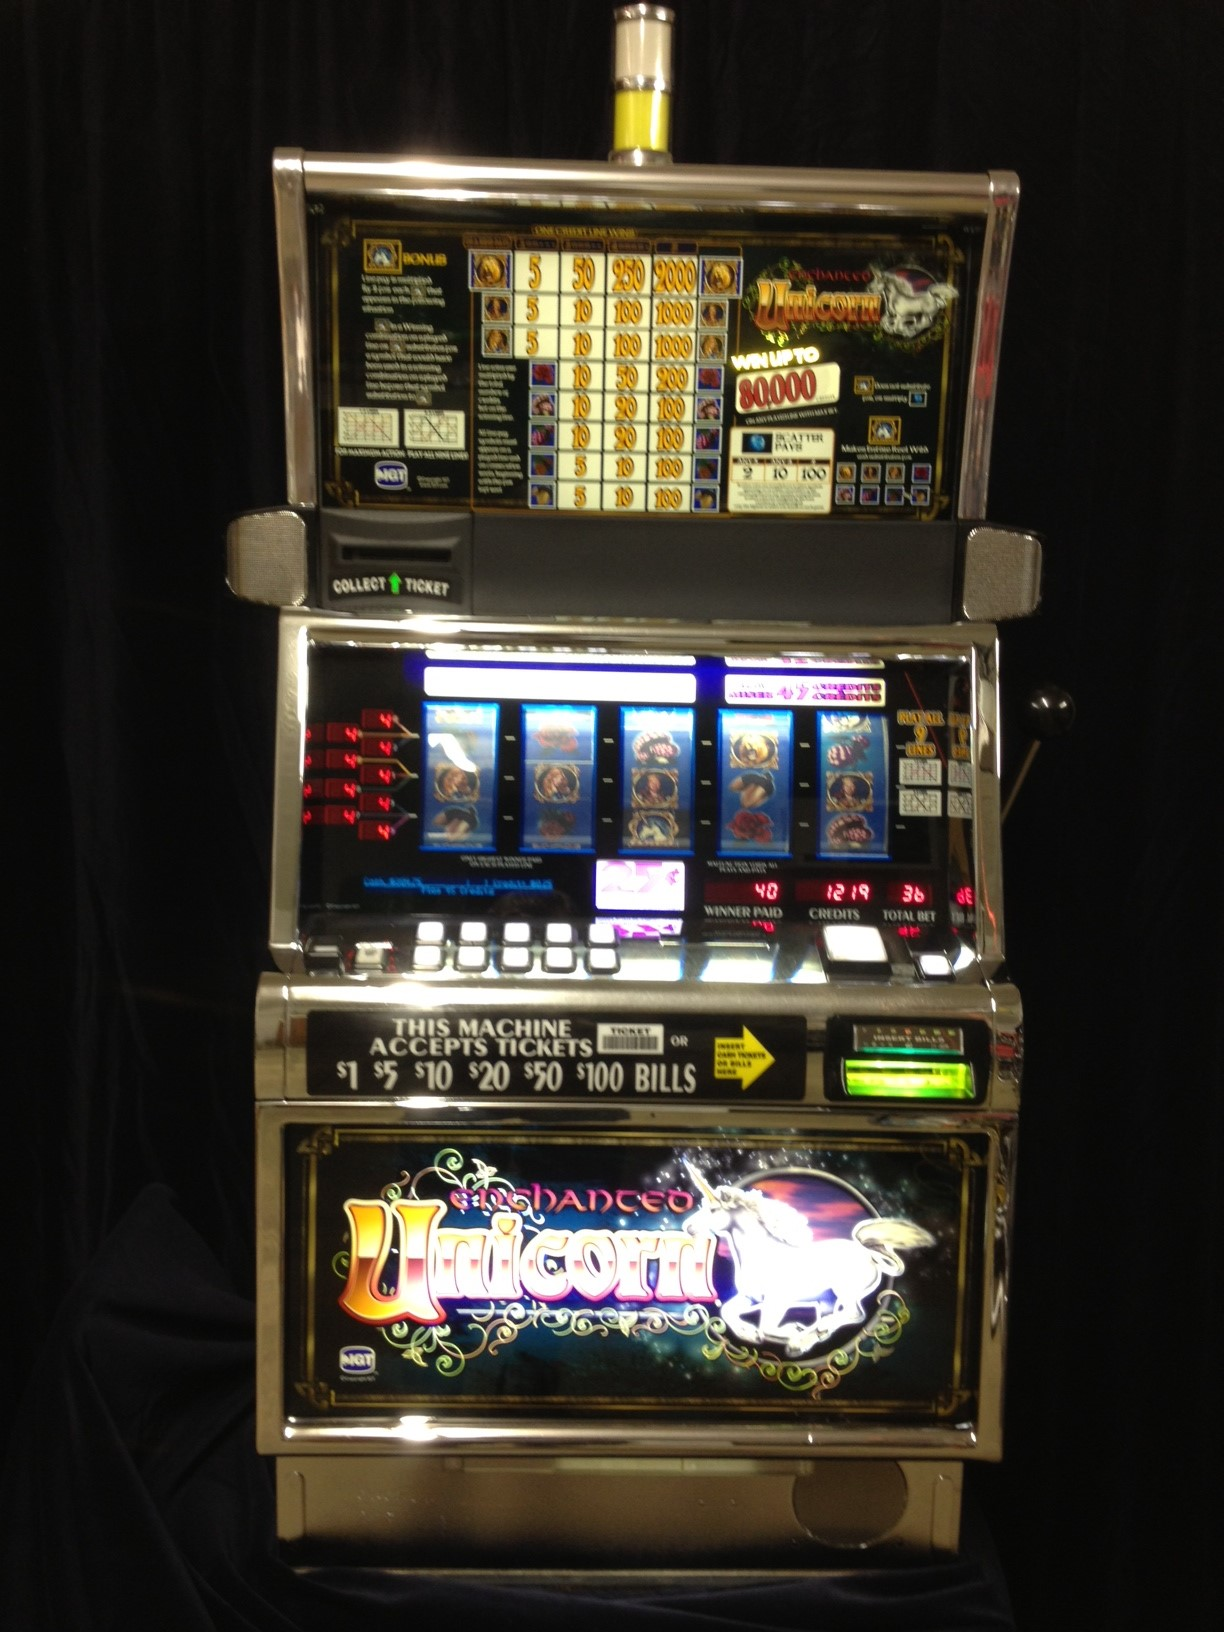 Igt enchanted unicorn slot machines casino junket representatives